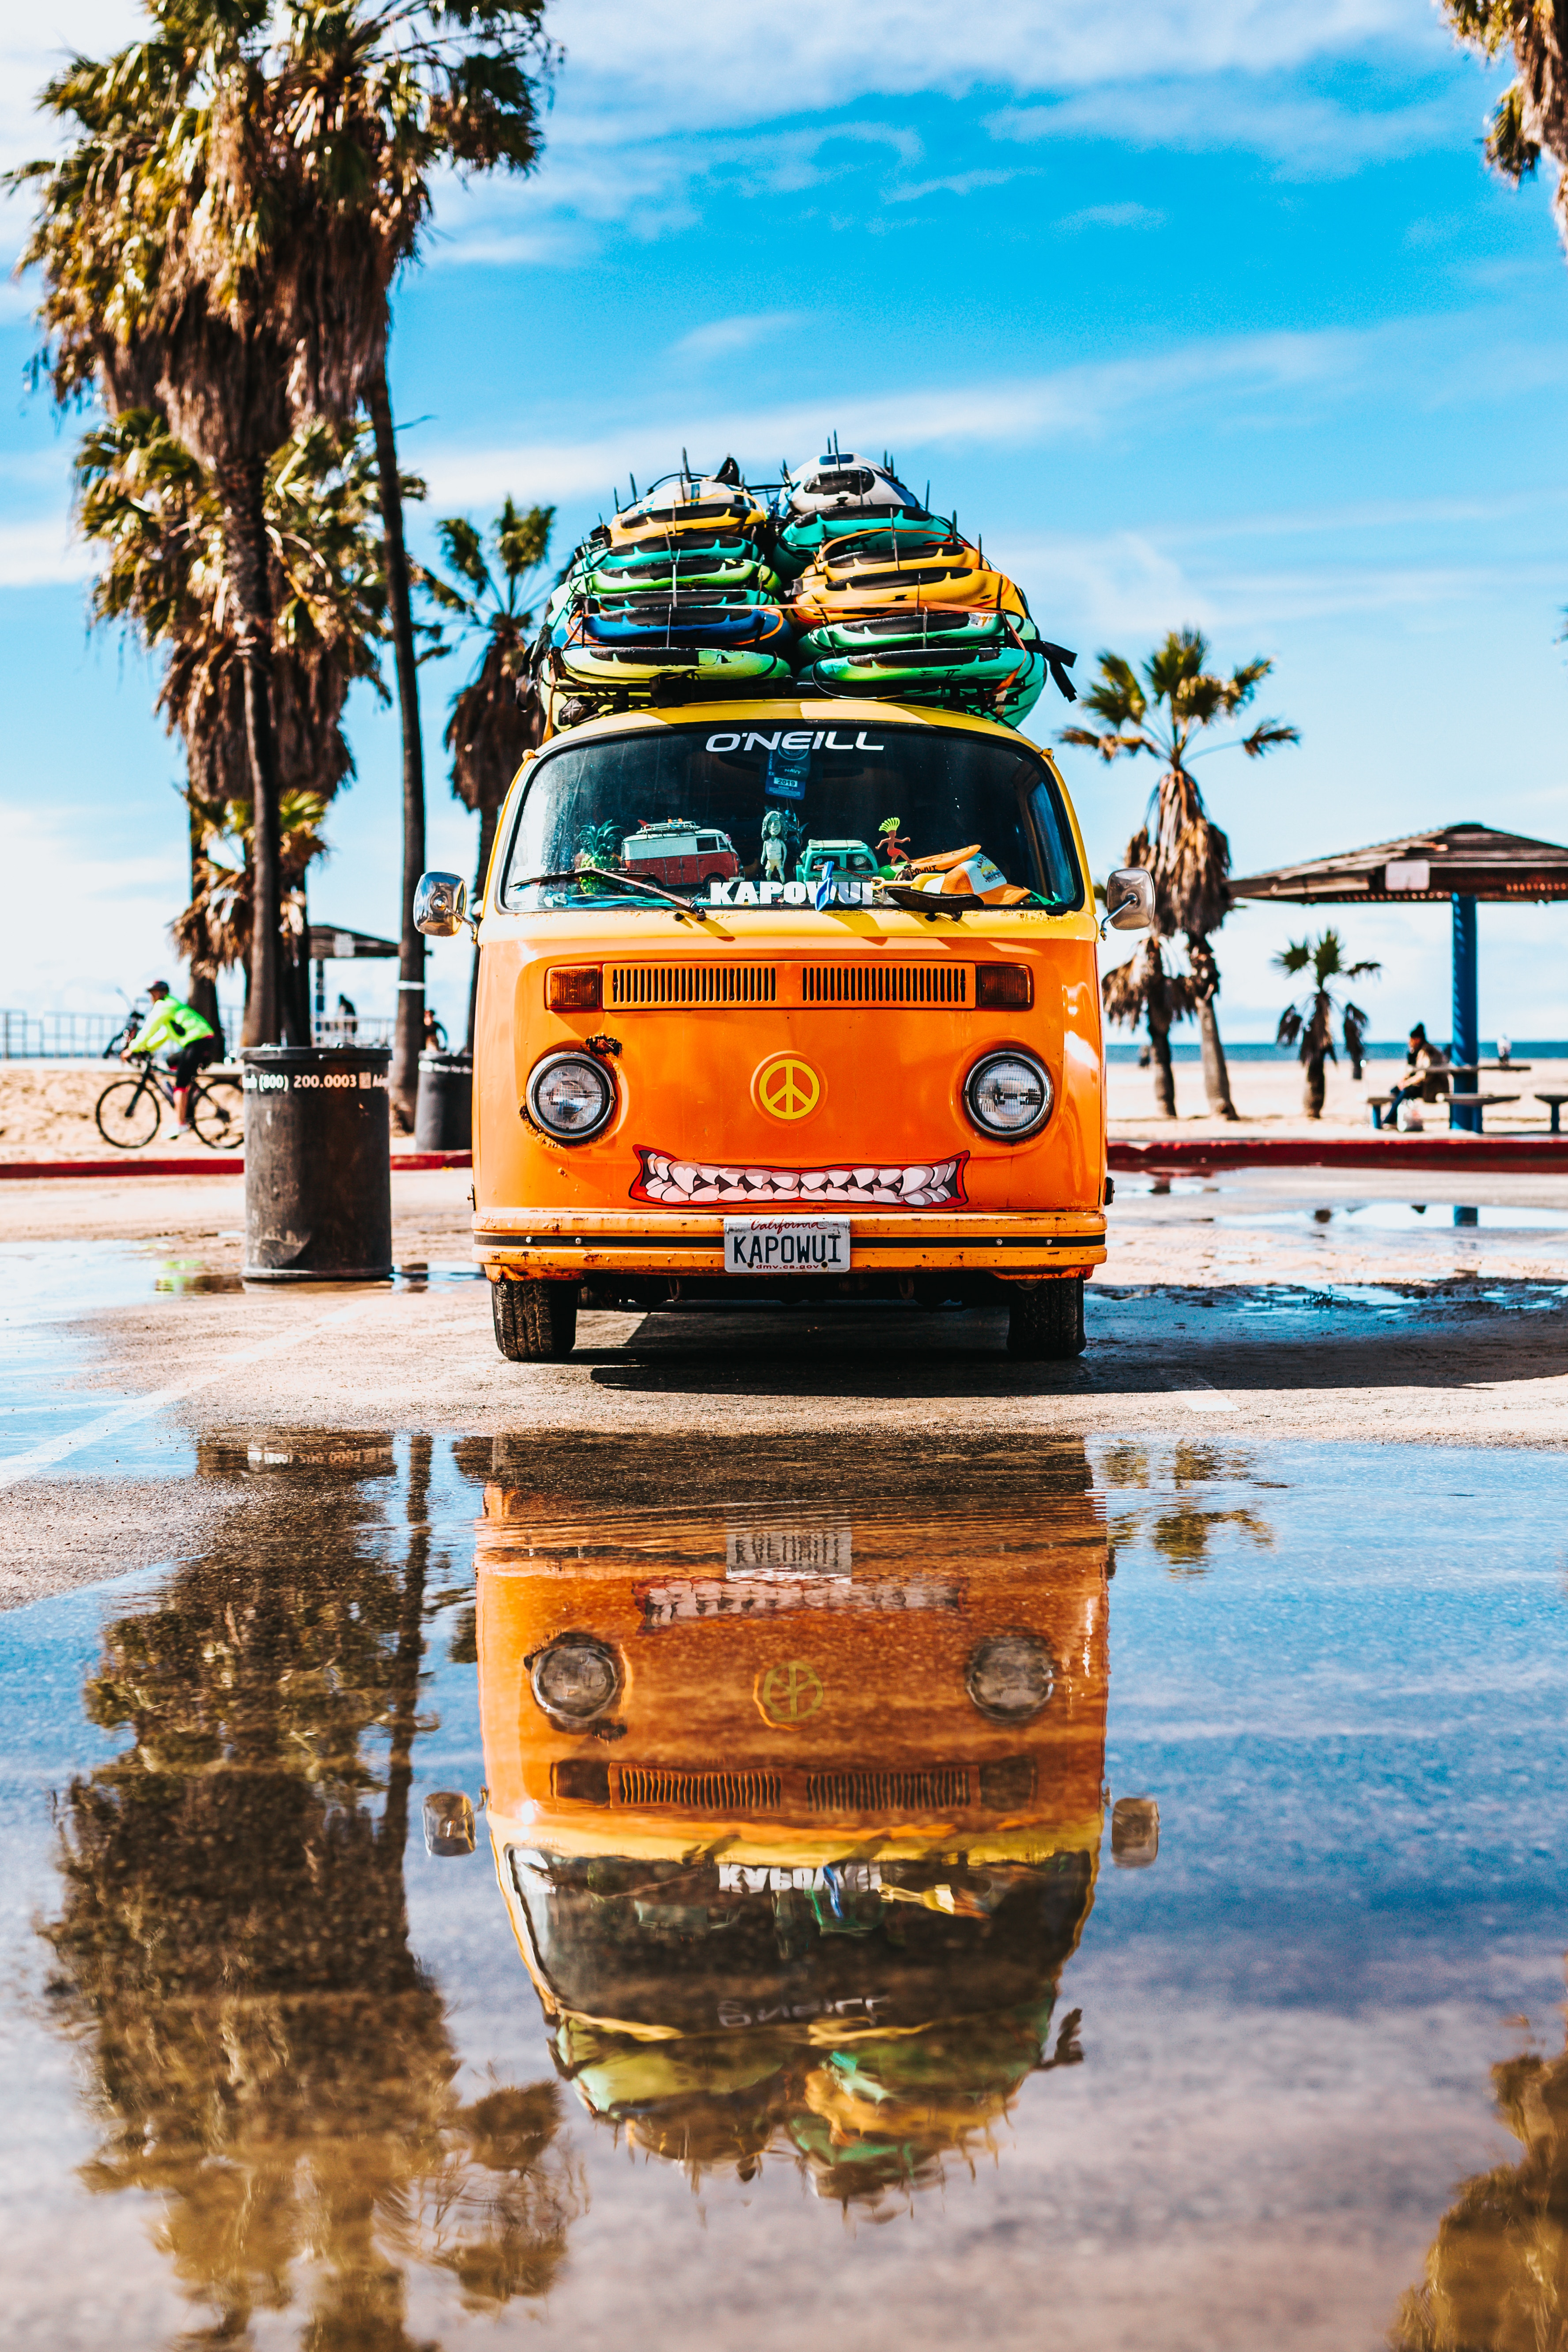 72975 download wallpaper Cars, Bus, Serfing, Summer screensavers and pictures for free